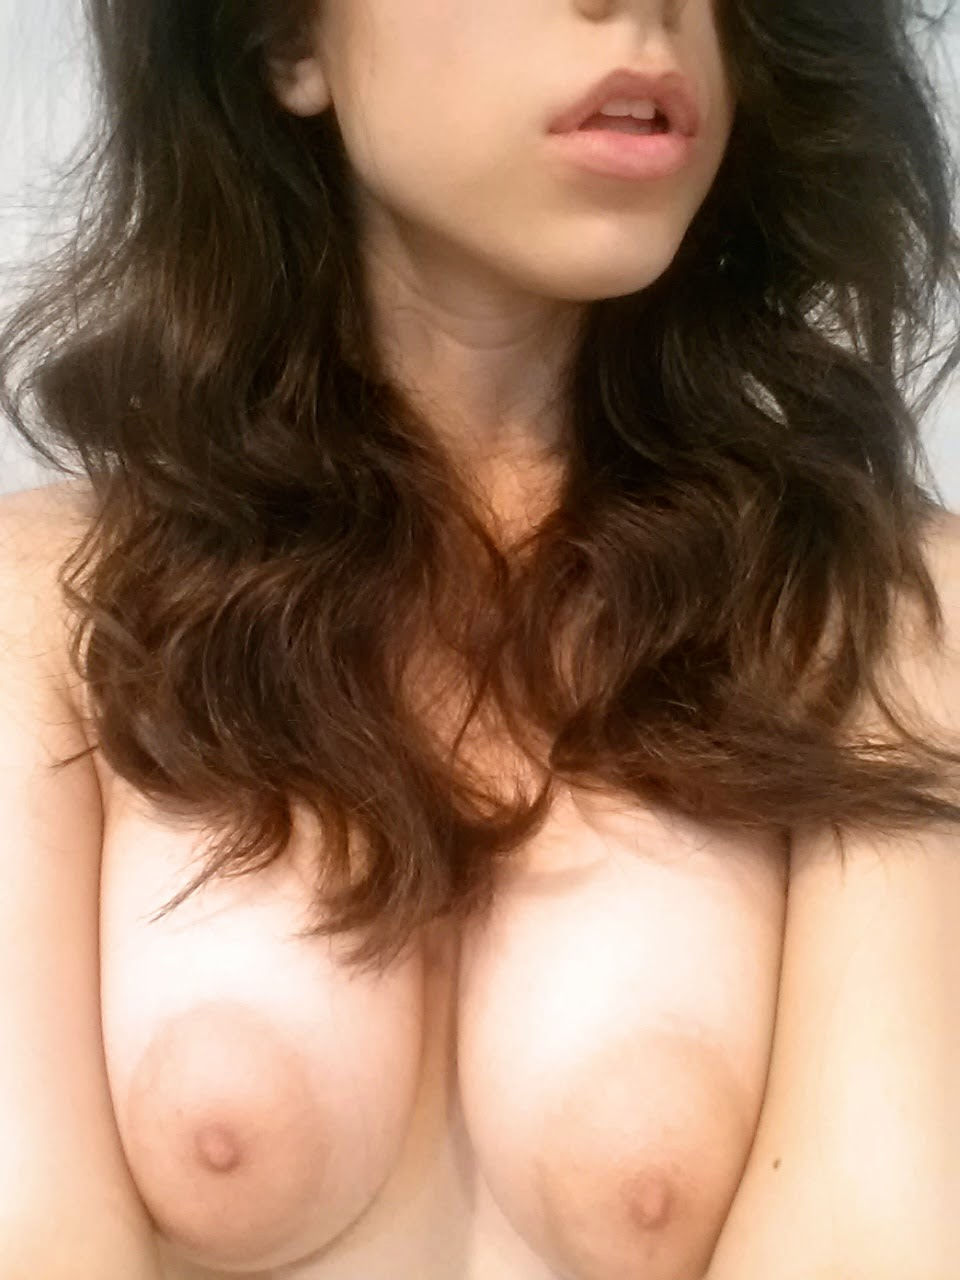 Alissa at night nude tits videos